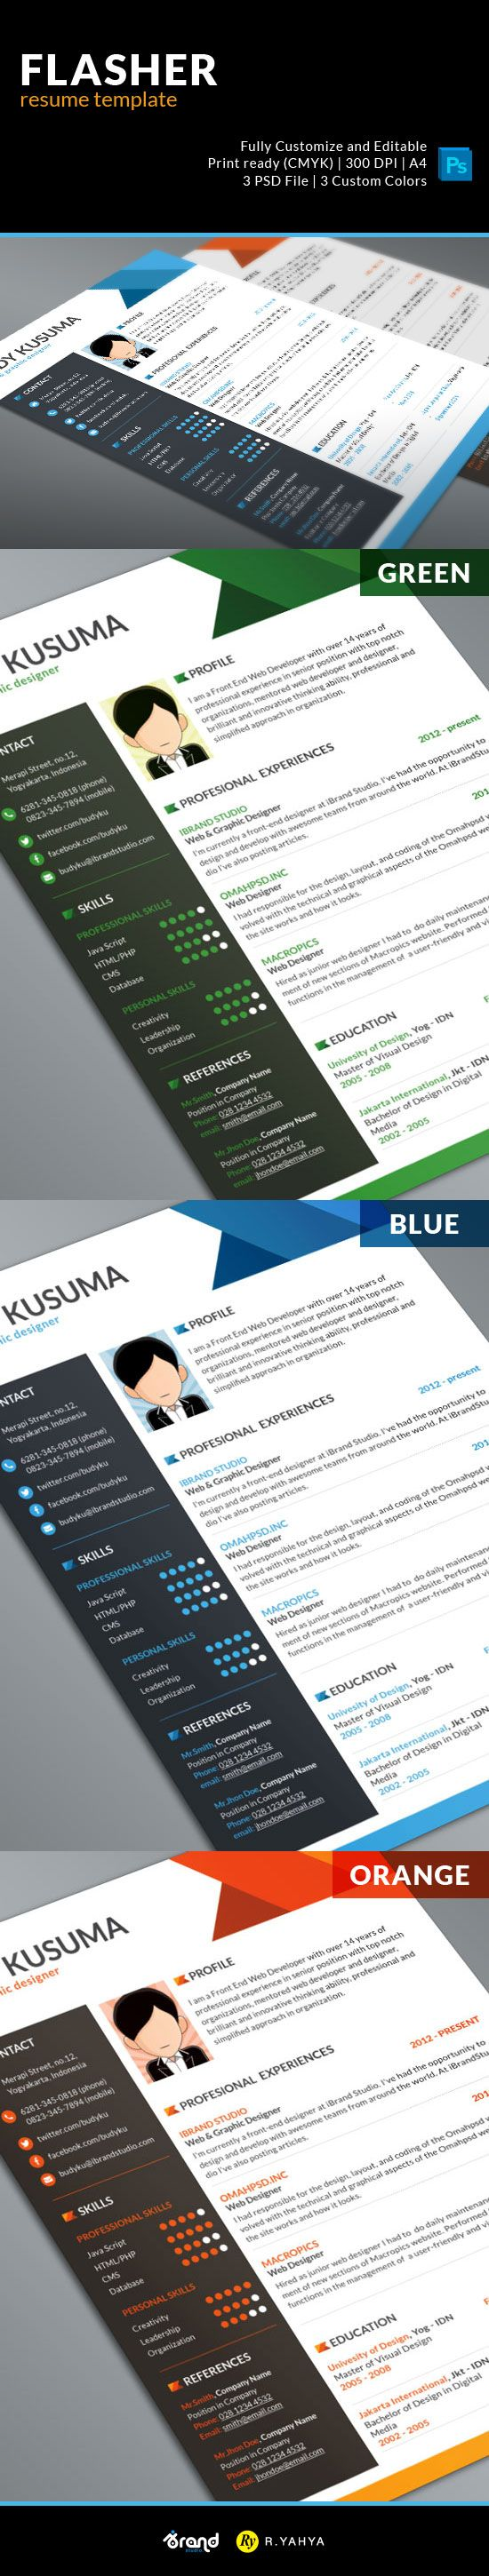 Free Resume PSD Template: Flasher (3 Colors) #resume #cv #psd